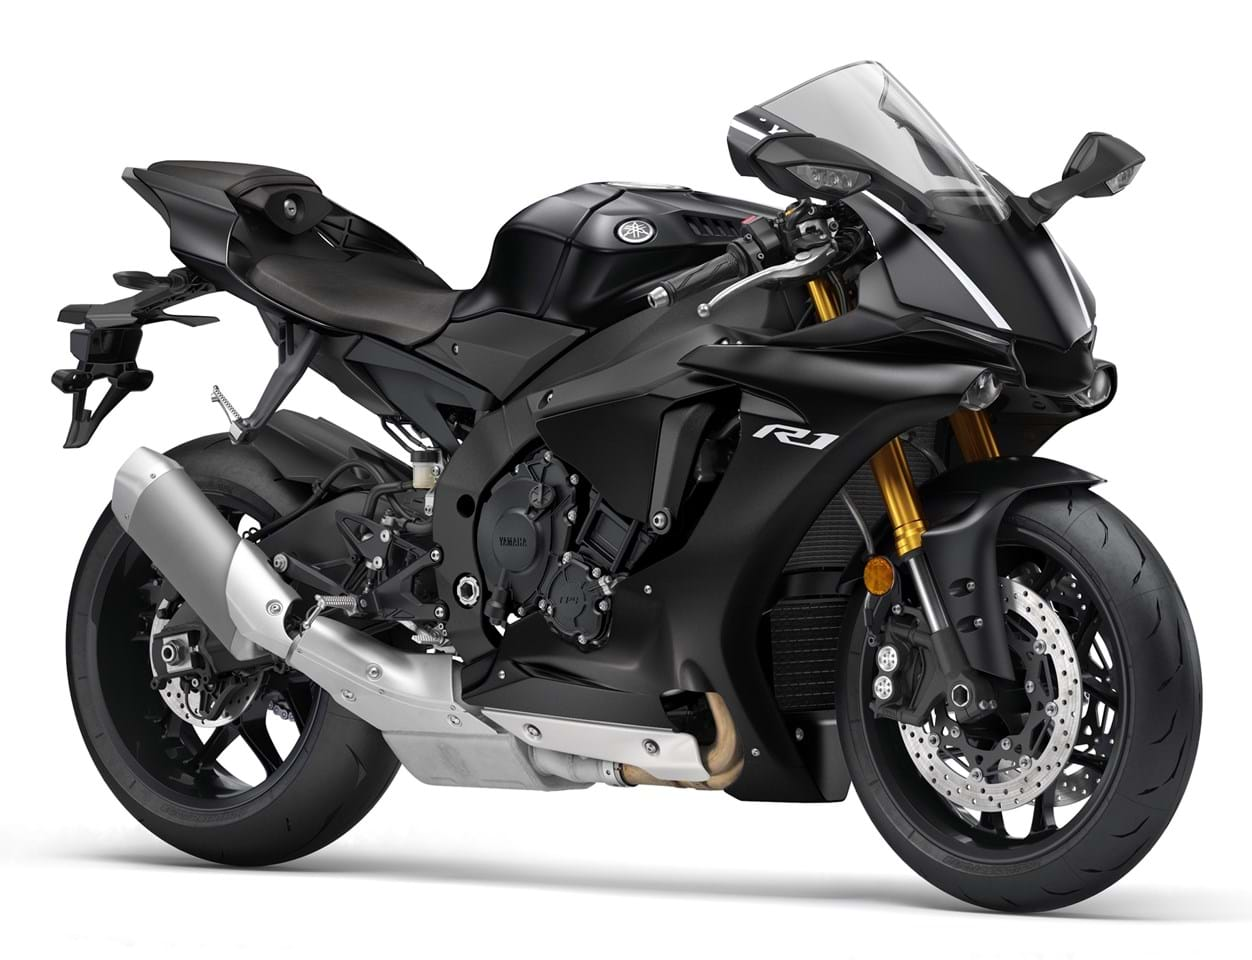 yamaha yzf r1 2015 on for sale price guide the bike market. Black Bedroom Furniture Sets. Home Design Ideas